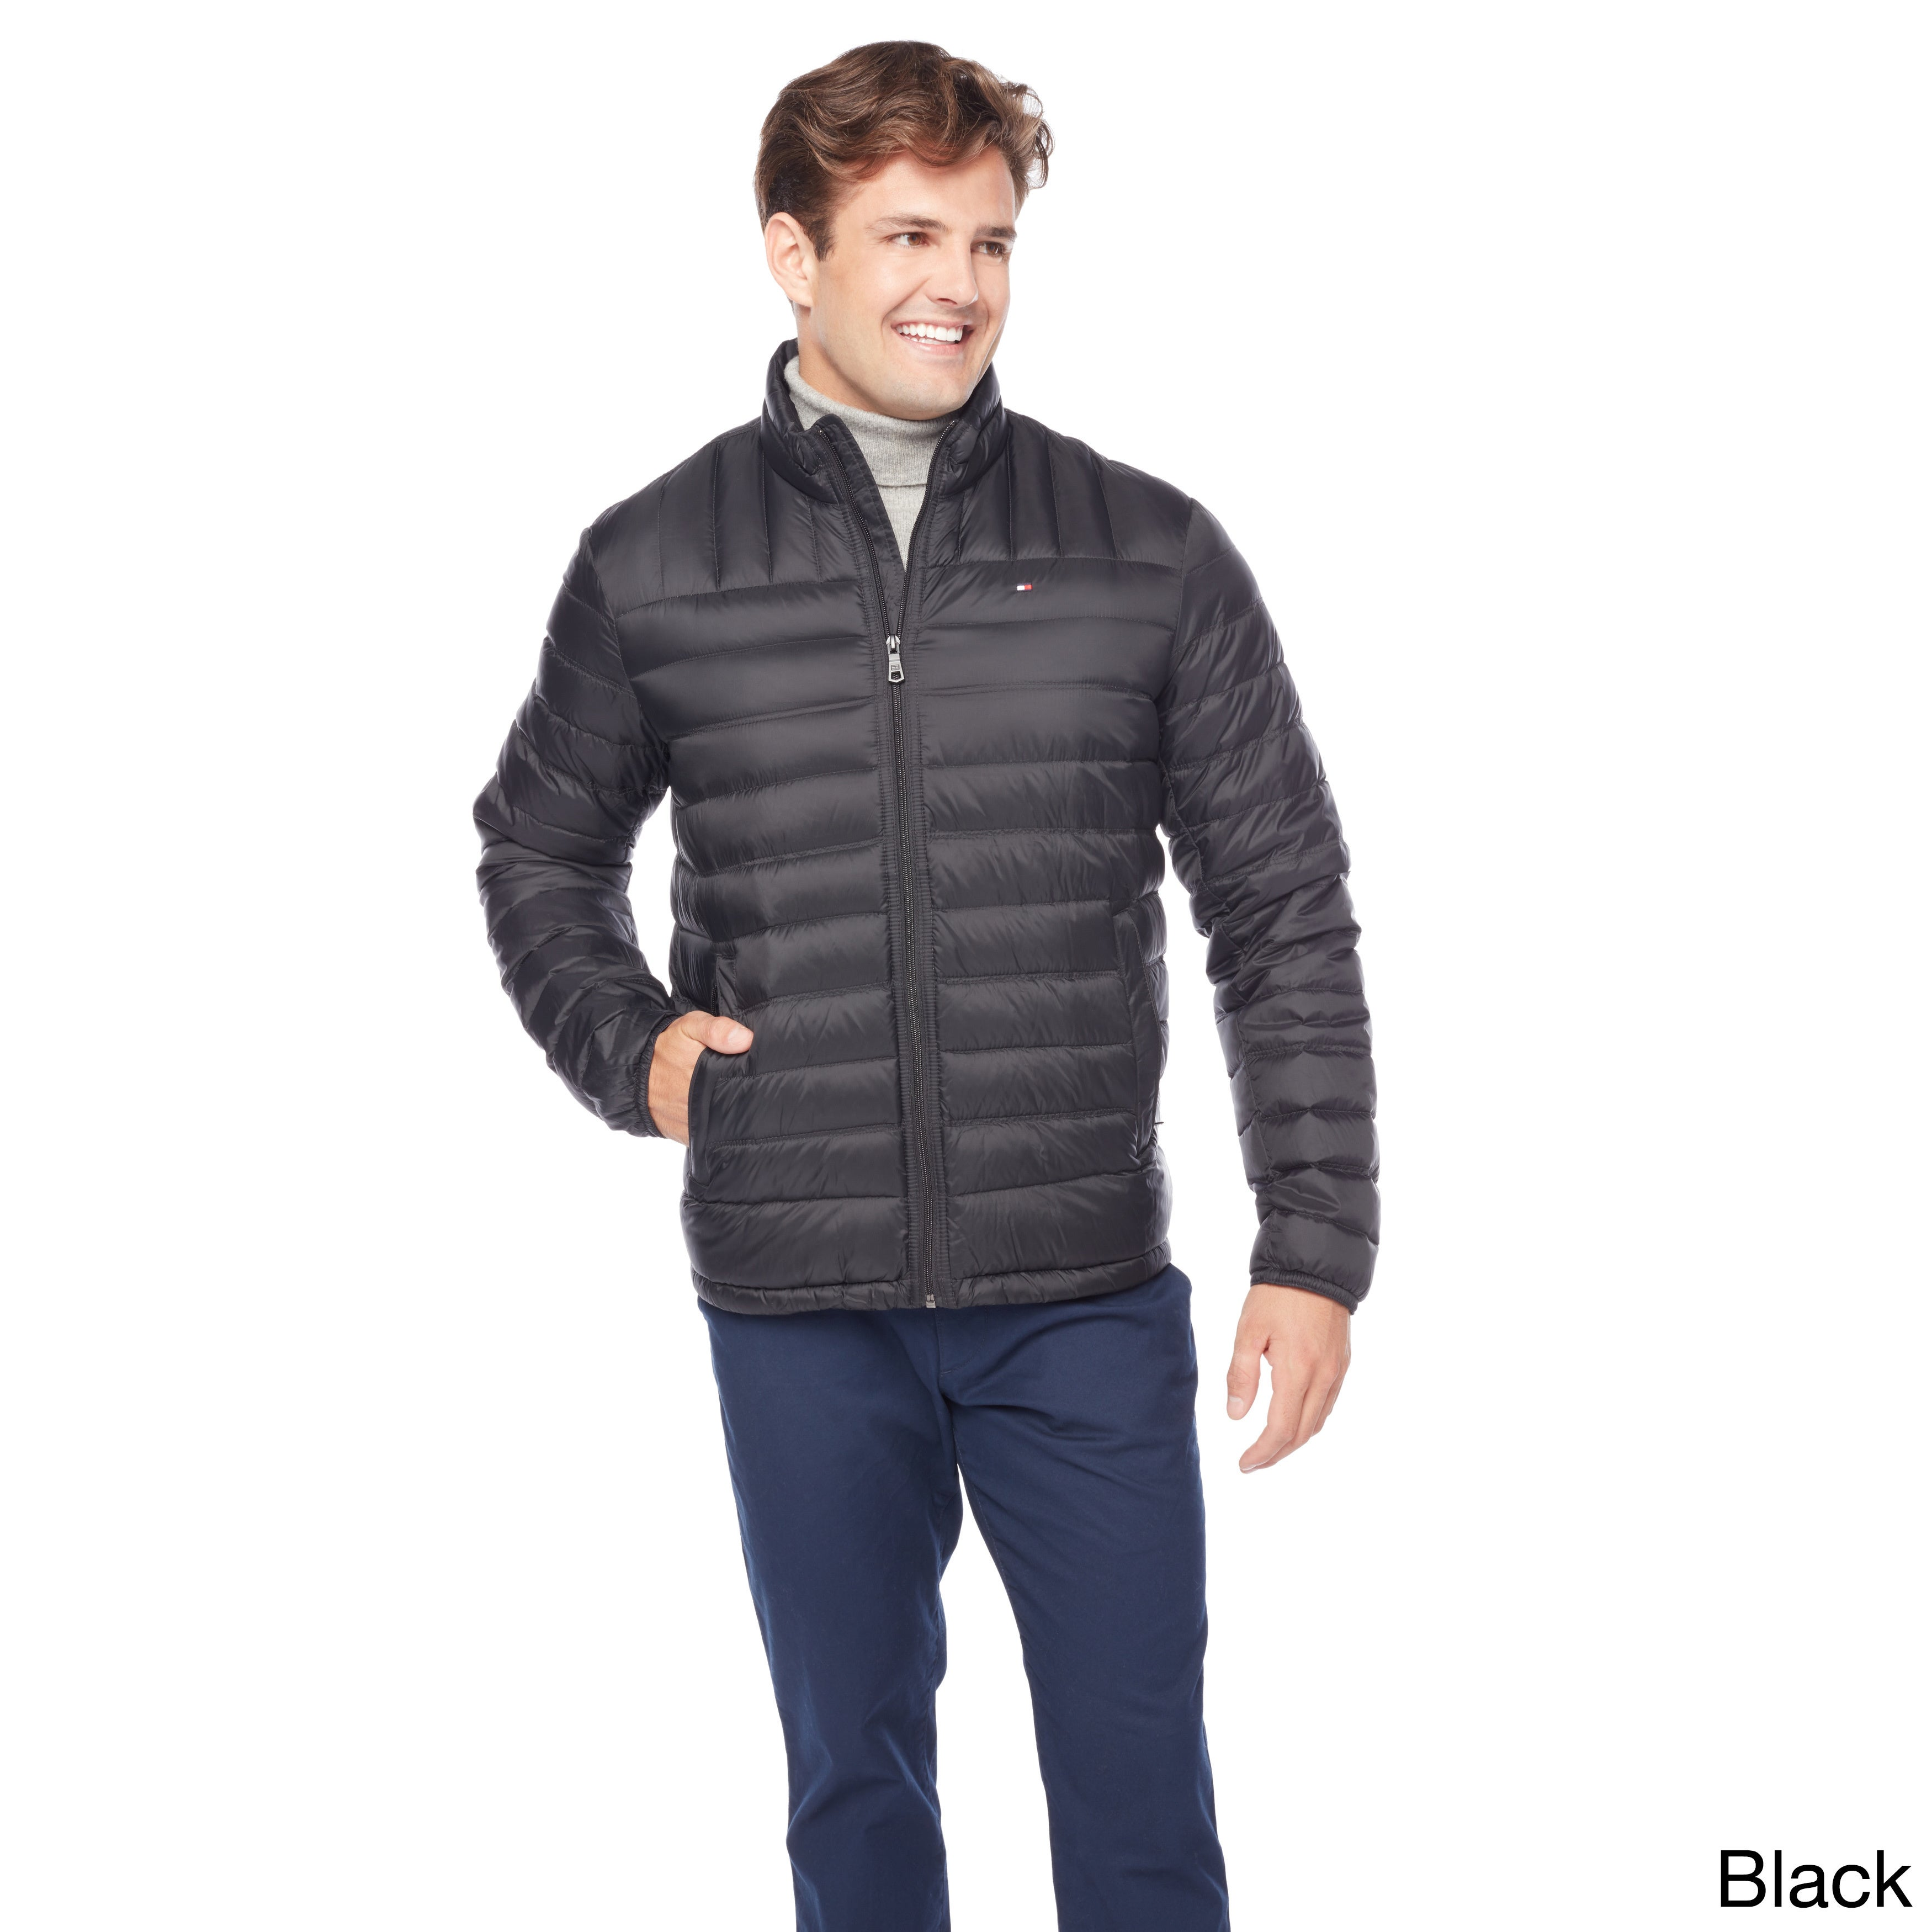 4f8819f1 Shop Tommy Hilfiger Men's Classic Down Packable Jacket - Free Shipping  Today - Overstock - 16405125